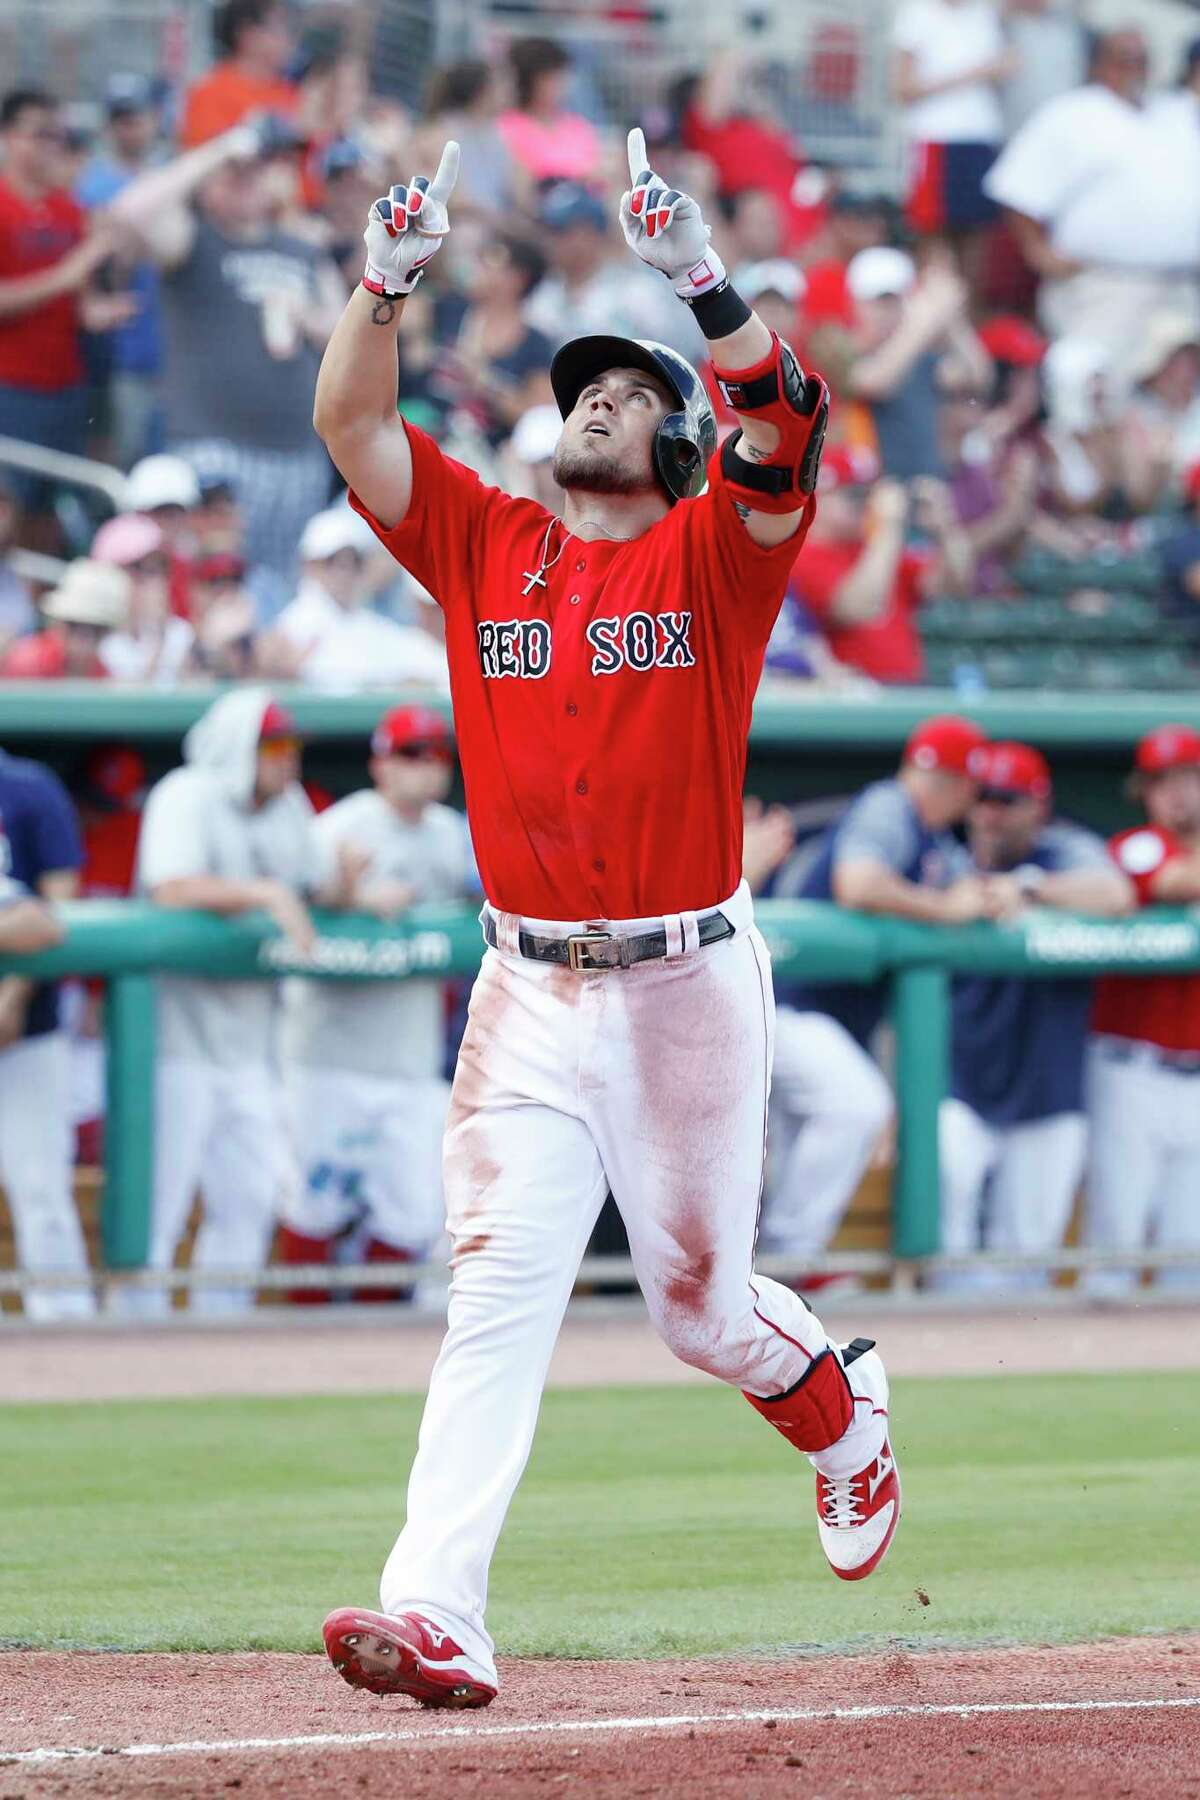 FORT MYERS, FL - FEBRUARY 23: Michael Chavis #65 of the Boston Red Sox reacts after hitting a three-run home run in the third inning of a Grapefruit League spring training game against the New York Yankees at JetBlue Park at Fenway South on February 23, 2019 in Fort Myers, Florida. (Photo by Joe Robbins/Getty Images)